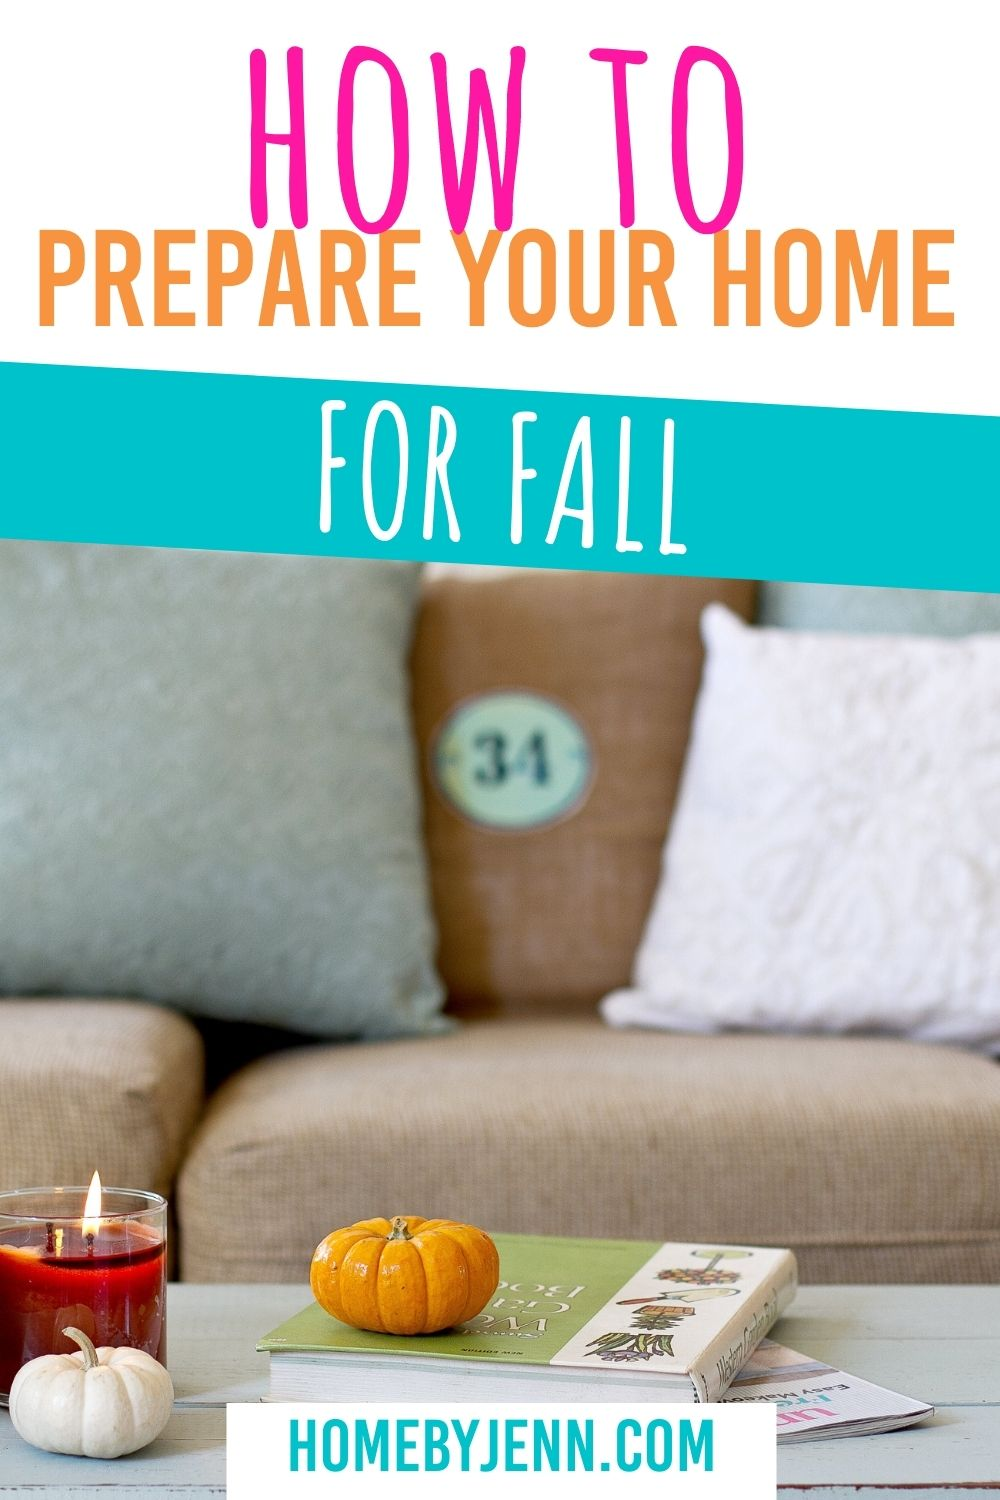 It's important to prepare your home for fall. When the wind and the rain hit it can be hard to get out and maintain your home. Let's look at what you can do to prepare your house for fall. via @homebyjenn